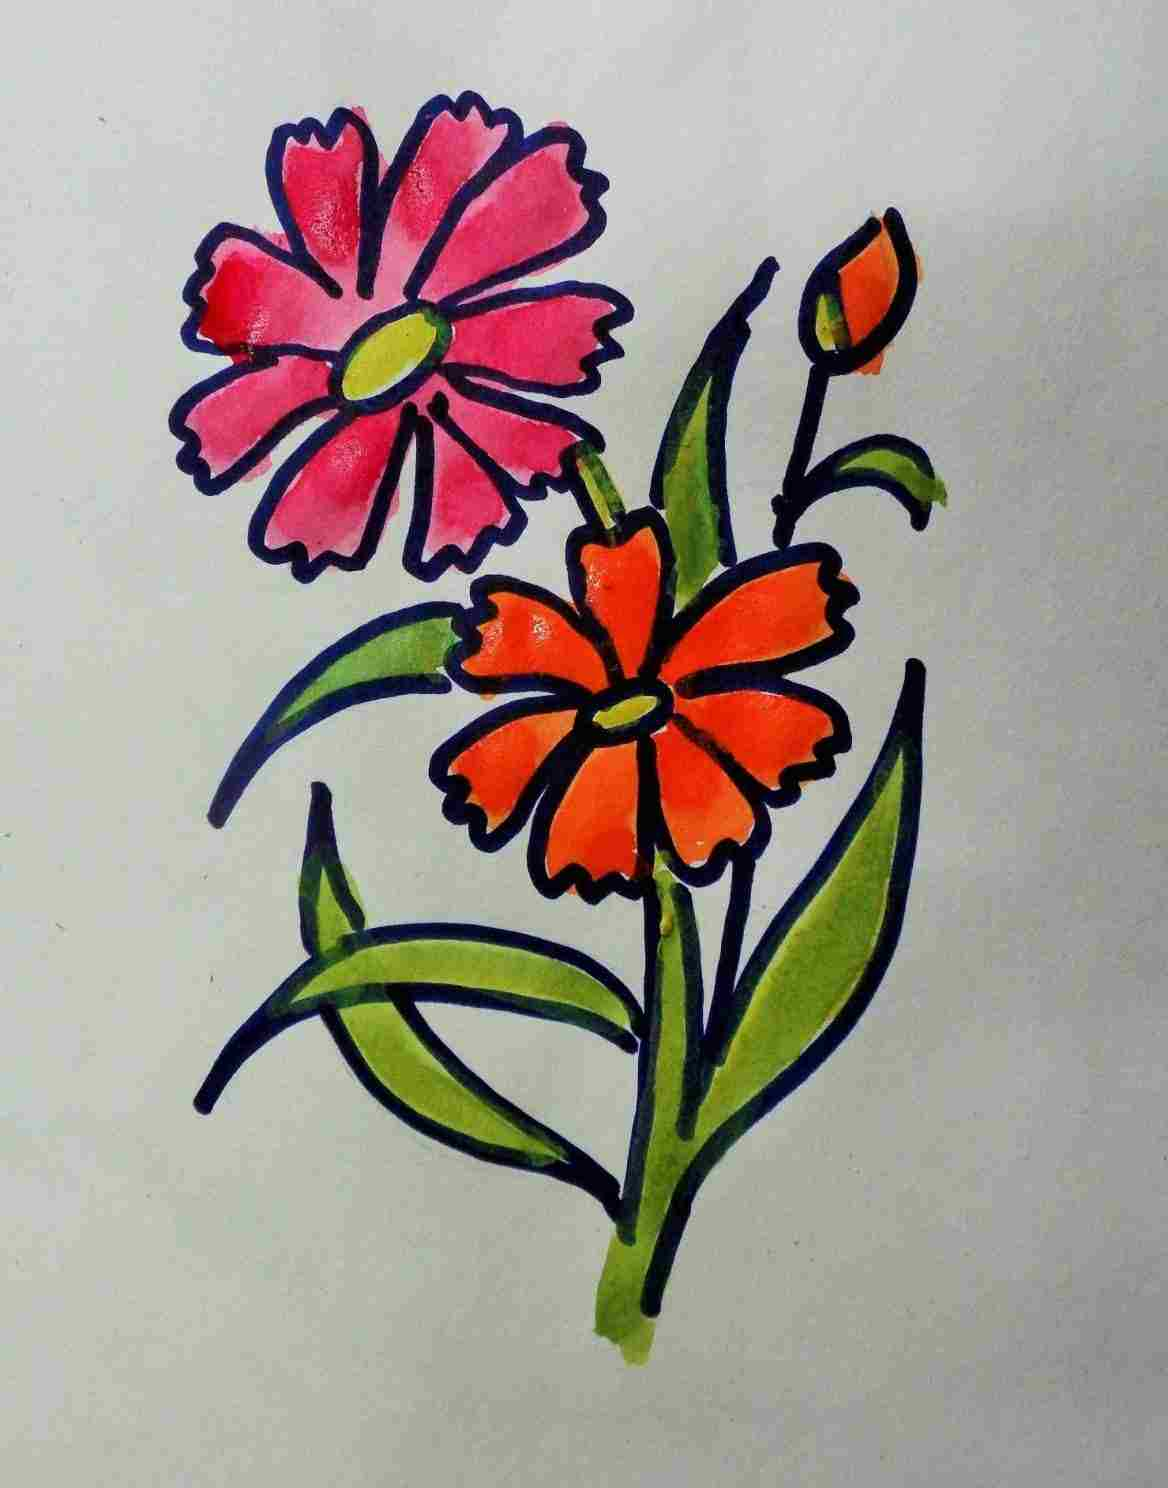 1168x1488 flower drawing sakura paint artsrhideascom sakura flower drawing